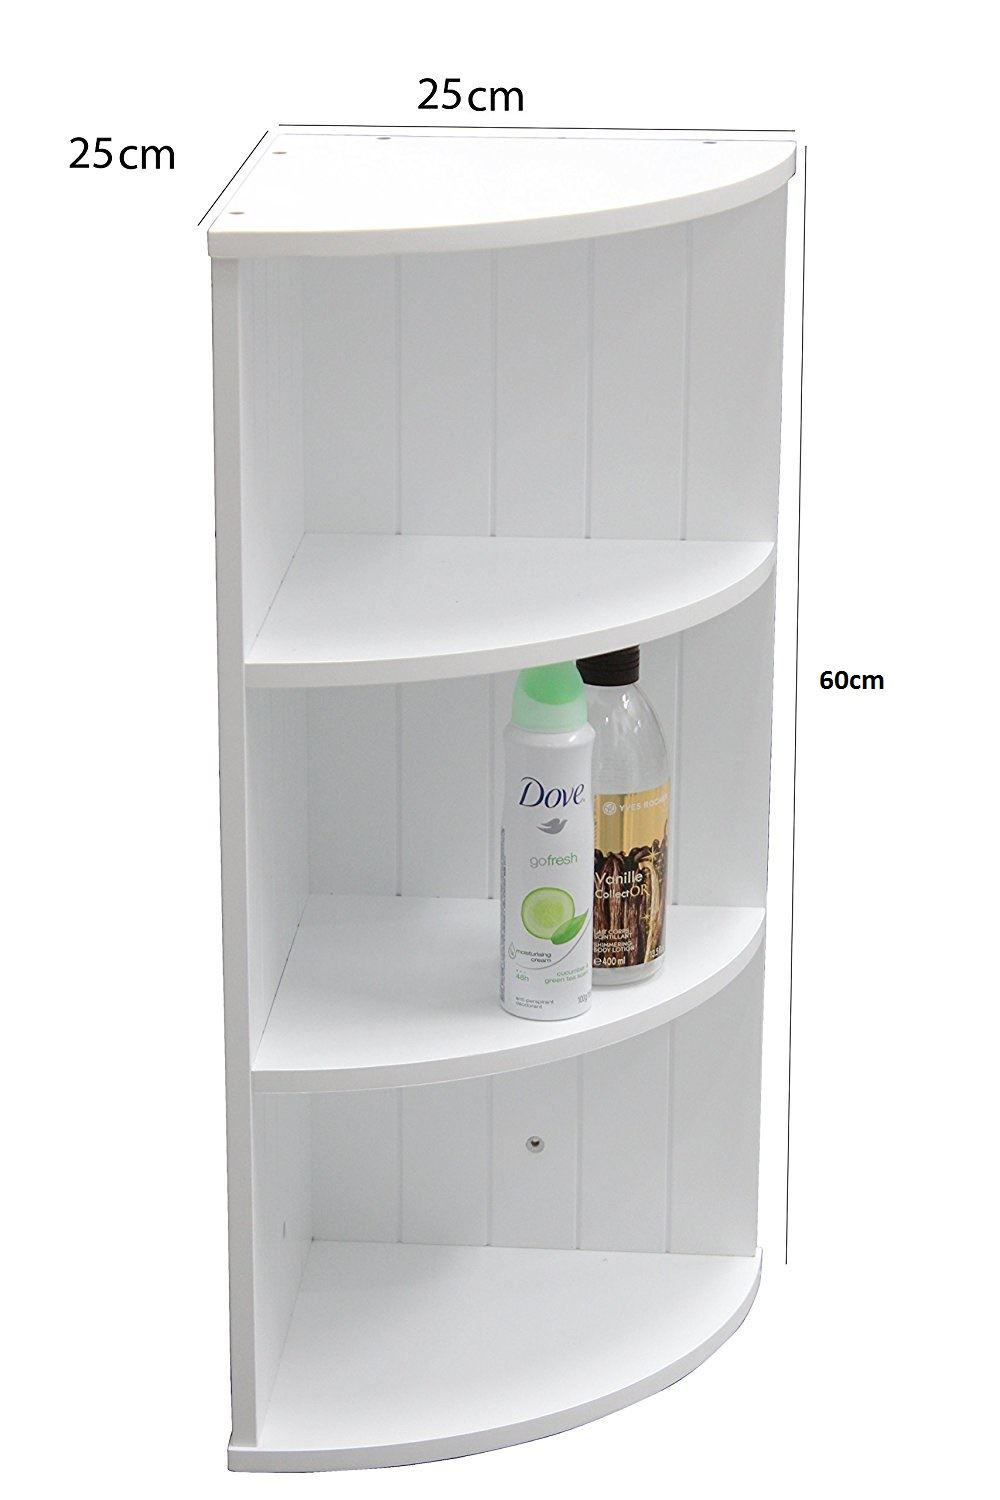 new white wooden bathroom cabinet shelf furniture cupboard 10665 | 62182d5b d742 4fce 9996 7b88a8c01682